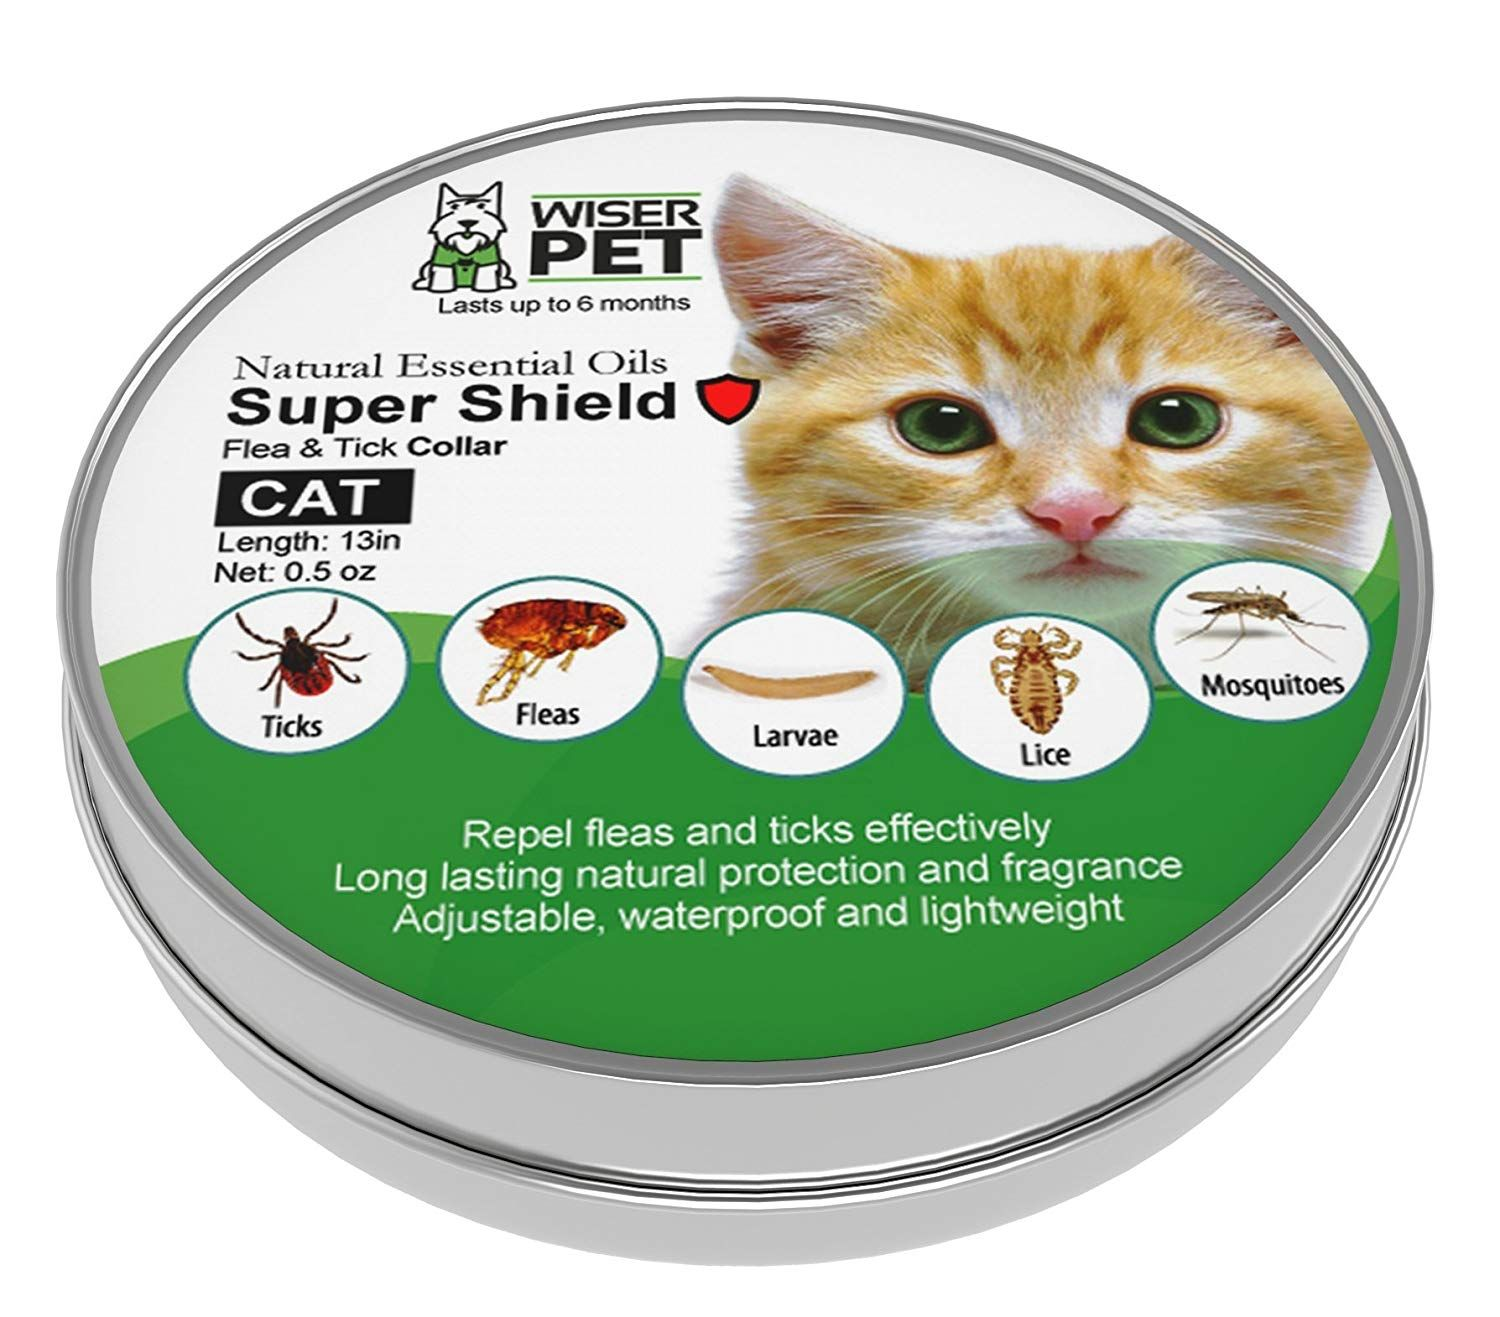 Natural Cat Flea Collar Enjoy Up To 6 Months All Natural Protection For Your Pet From Fleas Ticks And Other Bugs And I Cat Fleas Cat Flea Collar Natural Cat